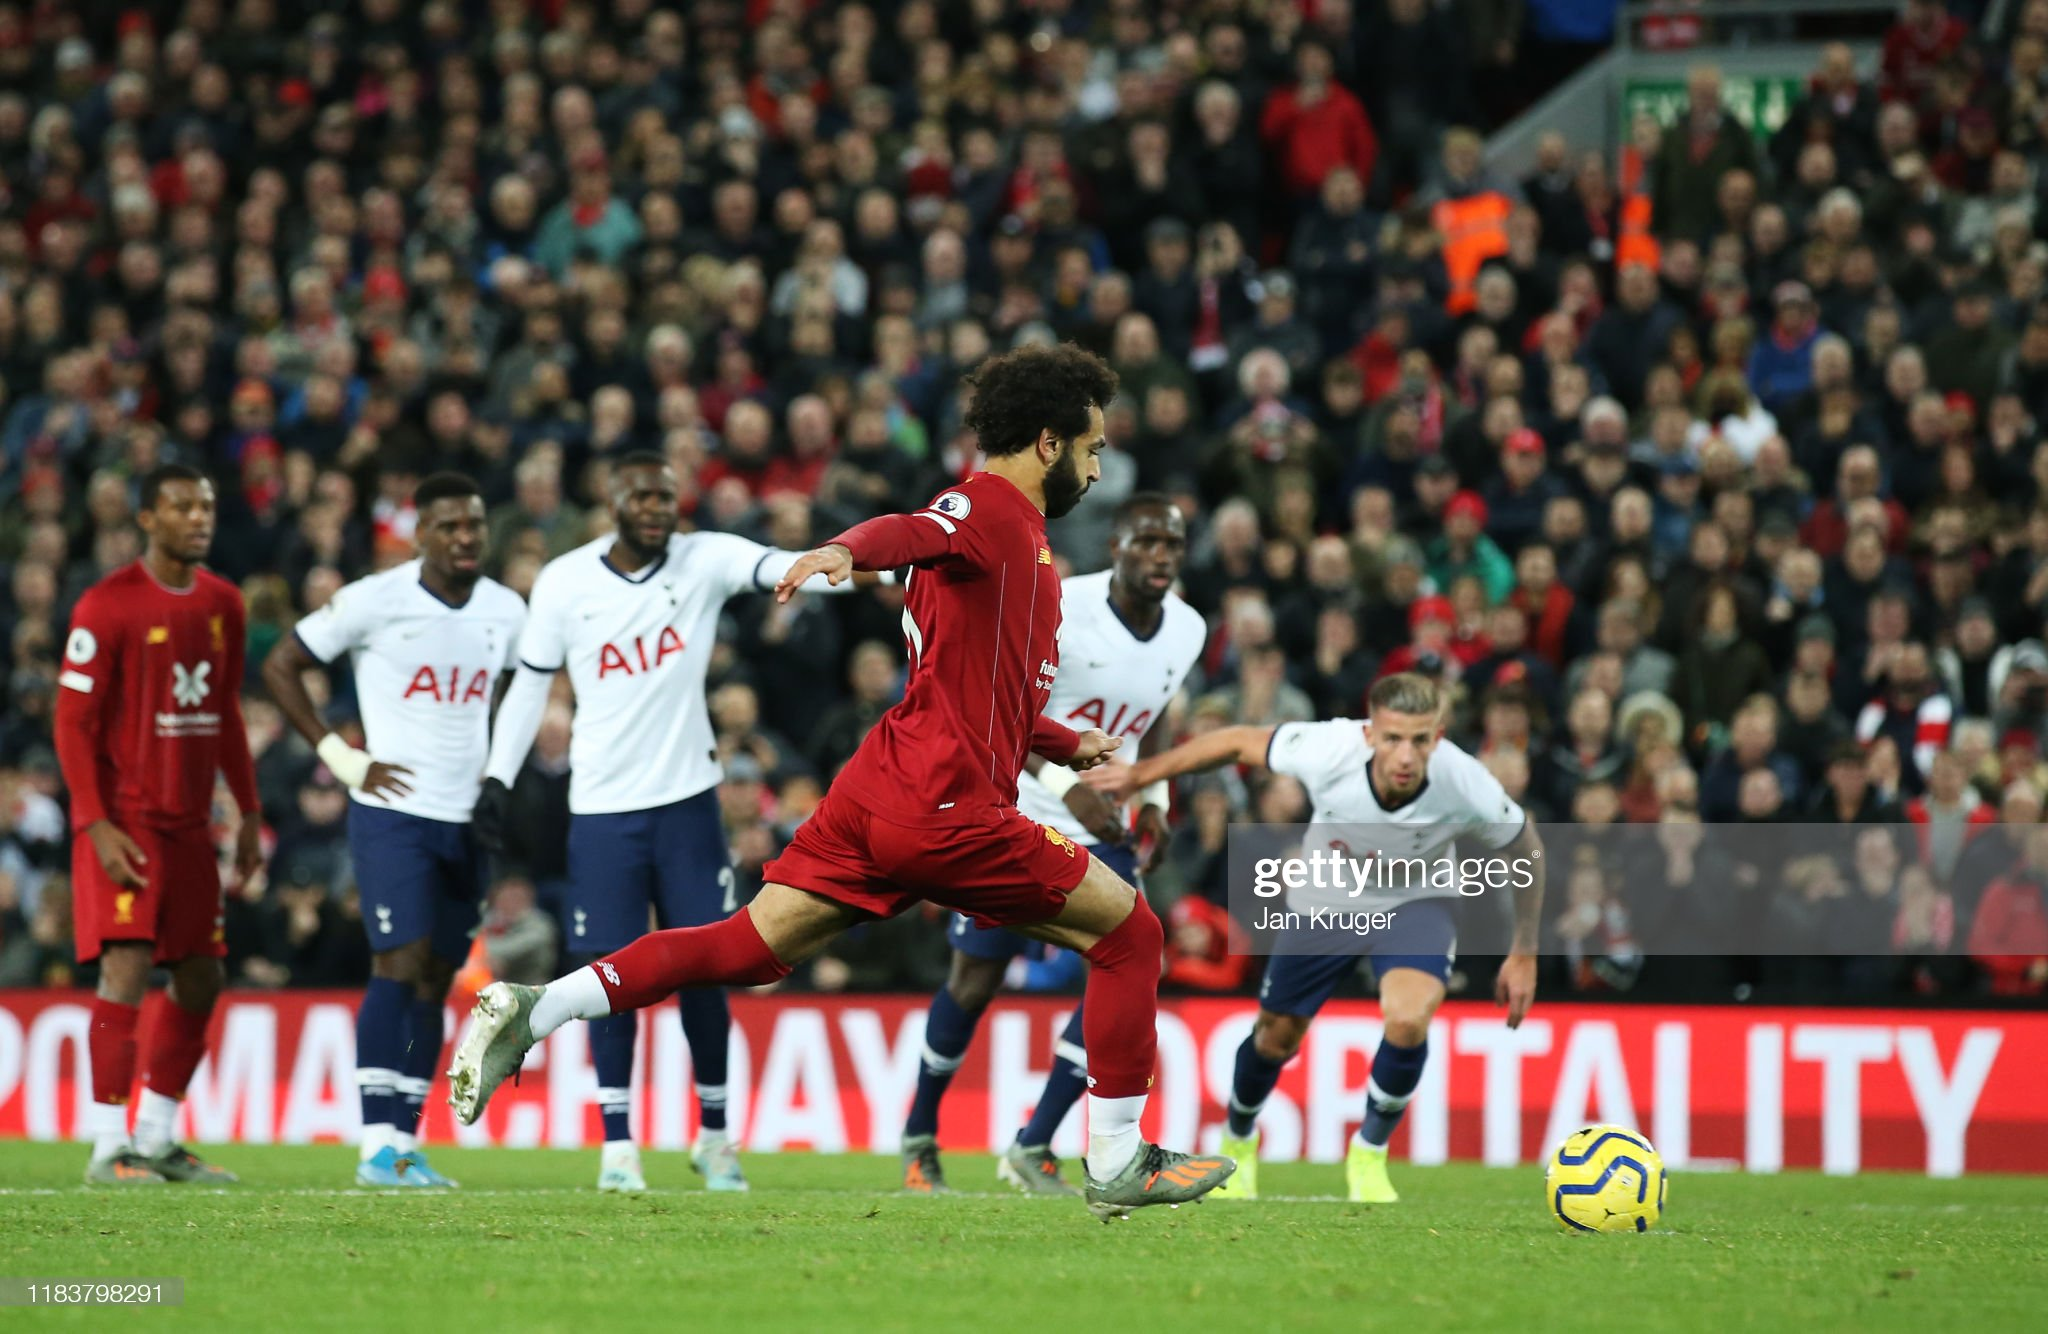 Tottenham v Liverpool preview, prediction and odds